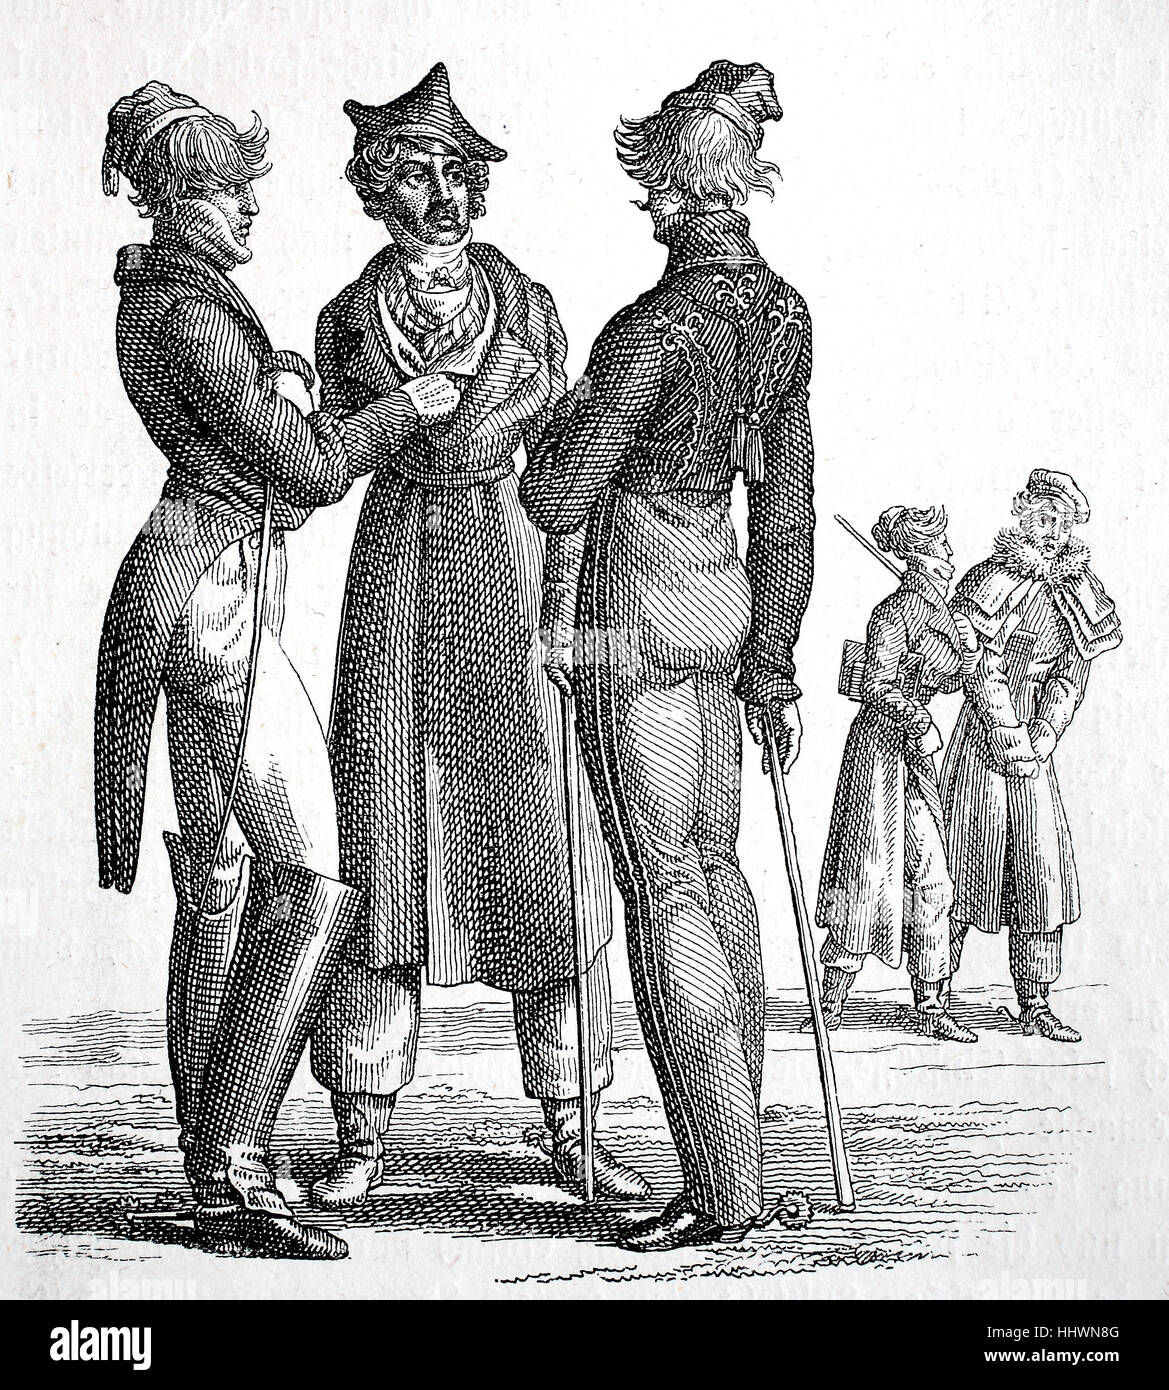 Clothing, costumes of the students around 1820-1830, Germany, historical  image or illustration, published 1890, digital improved